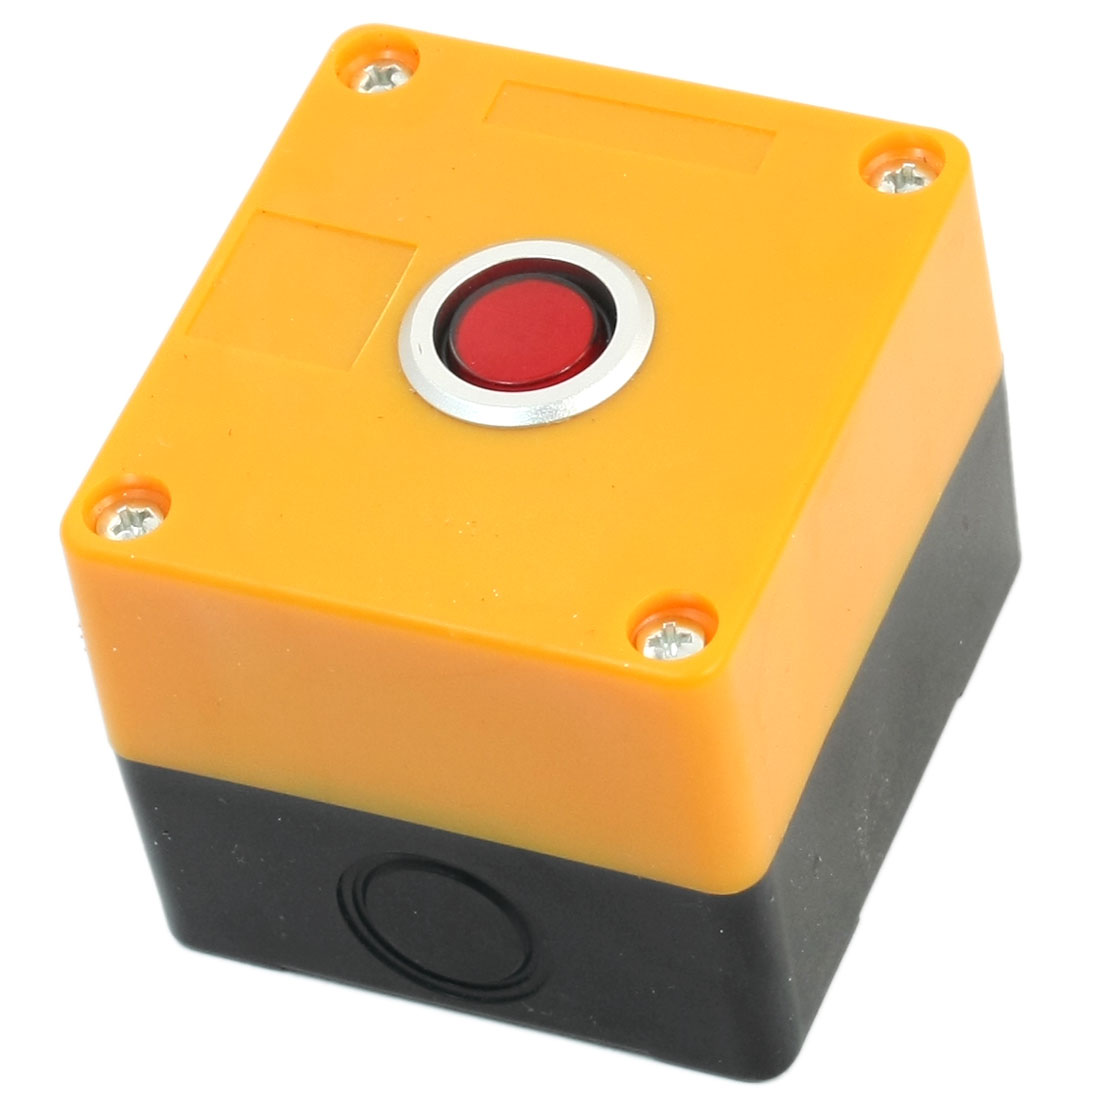 AC 220V 5A Red Lamp SPDT 1NO 1NC 5Pin Latching Rectangle Plastic Case Push Button Station Switch Box